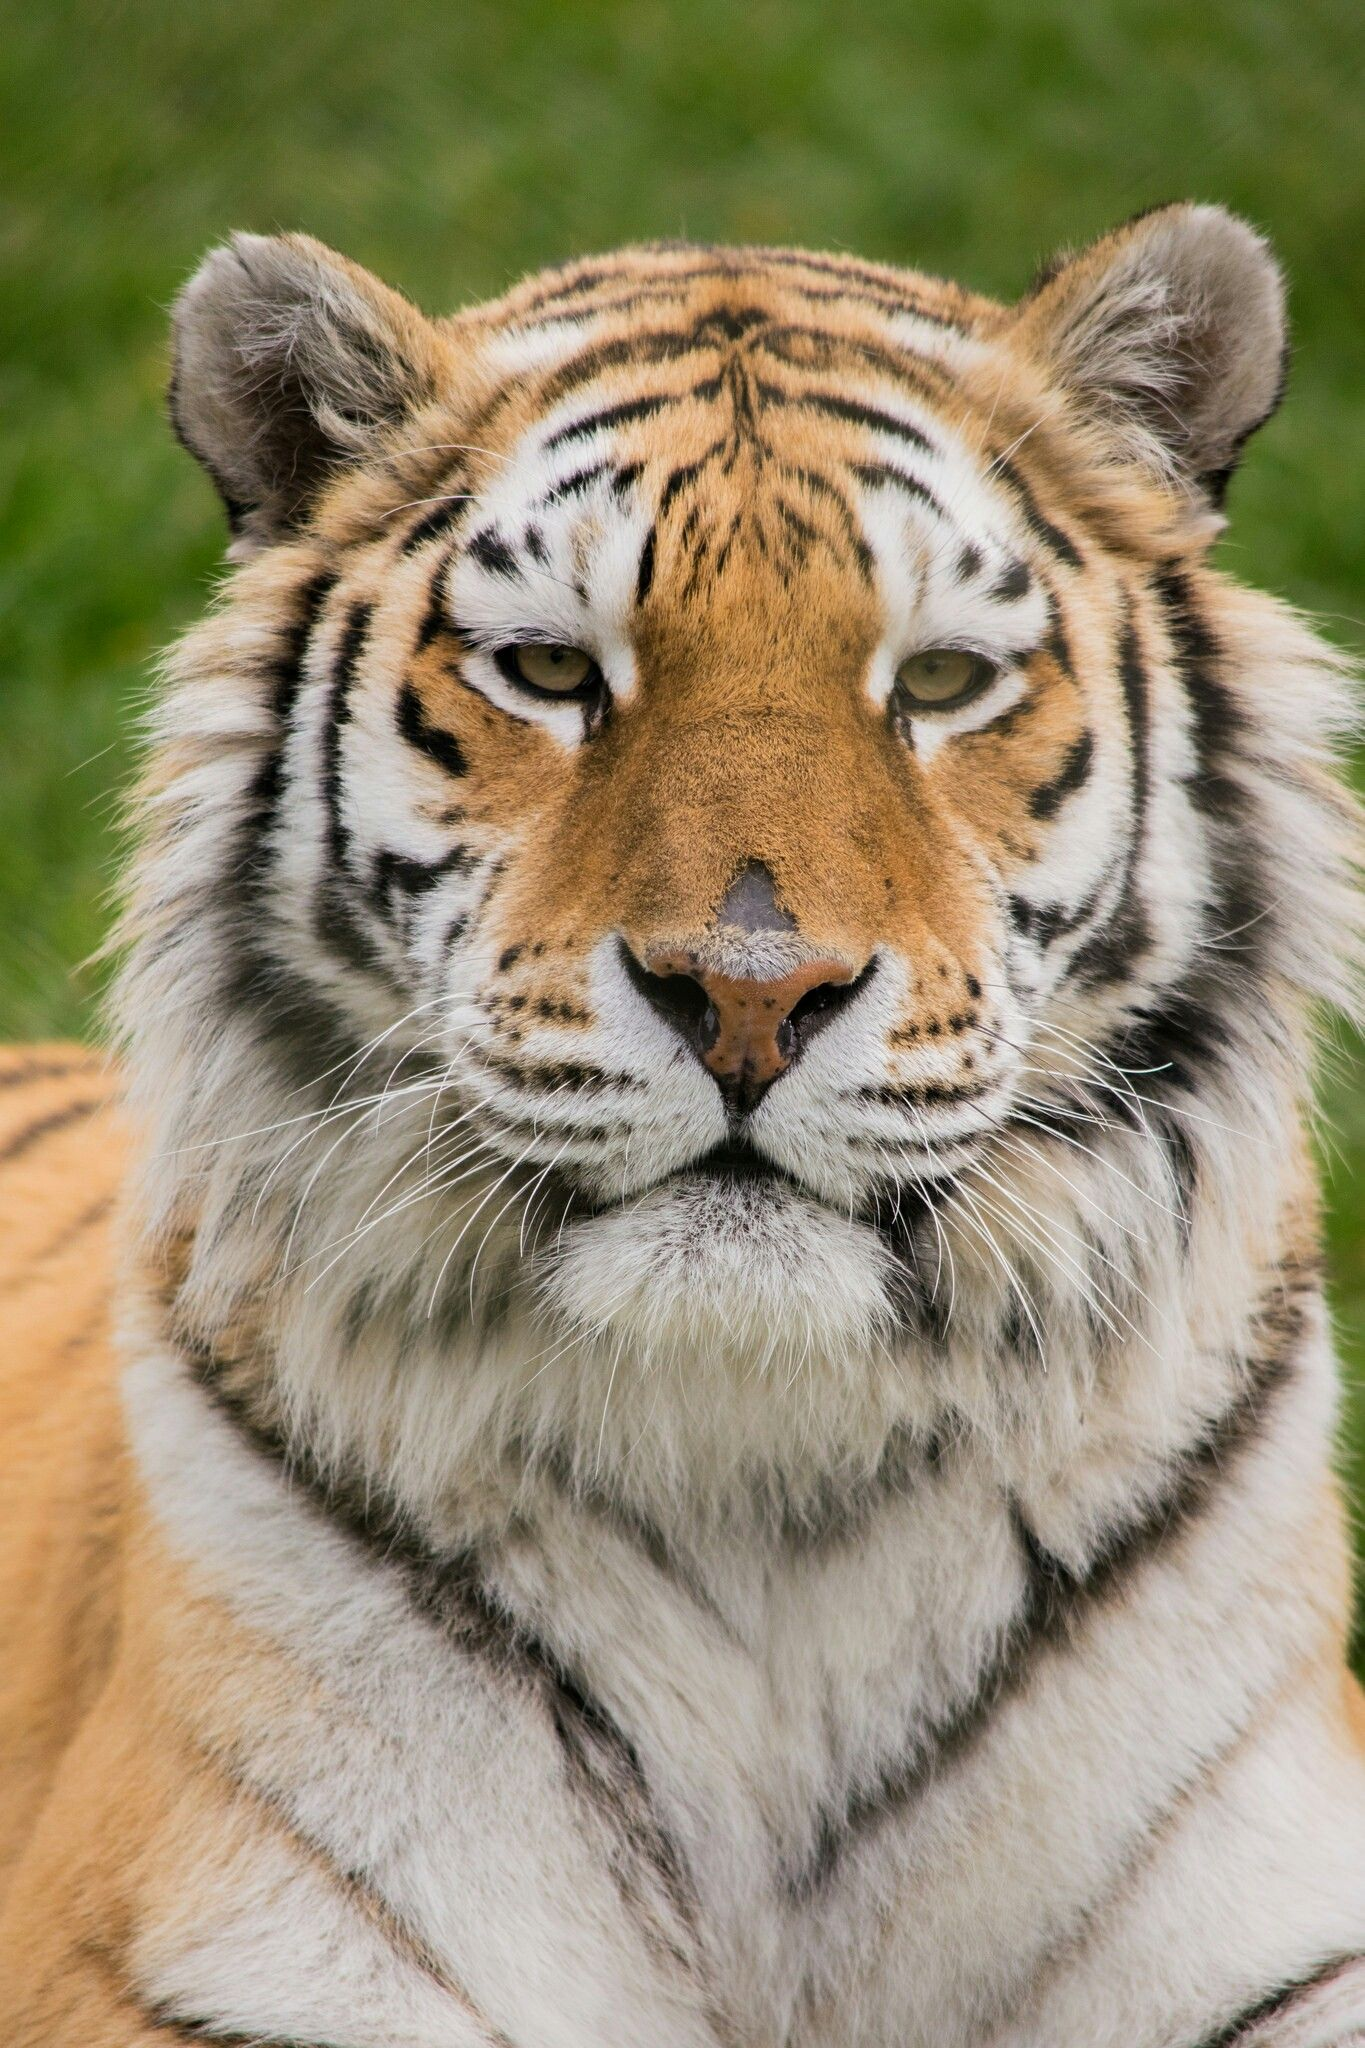 Pin by Jaunte Cunningham on big cats Wild cats, Big cats